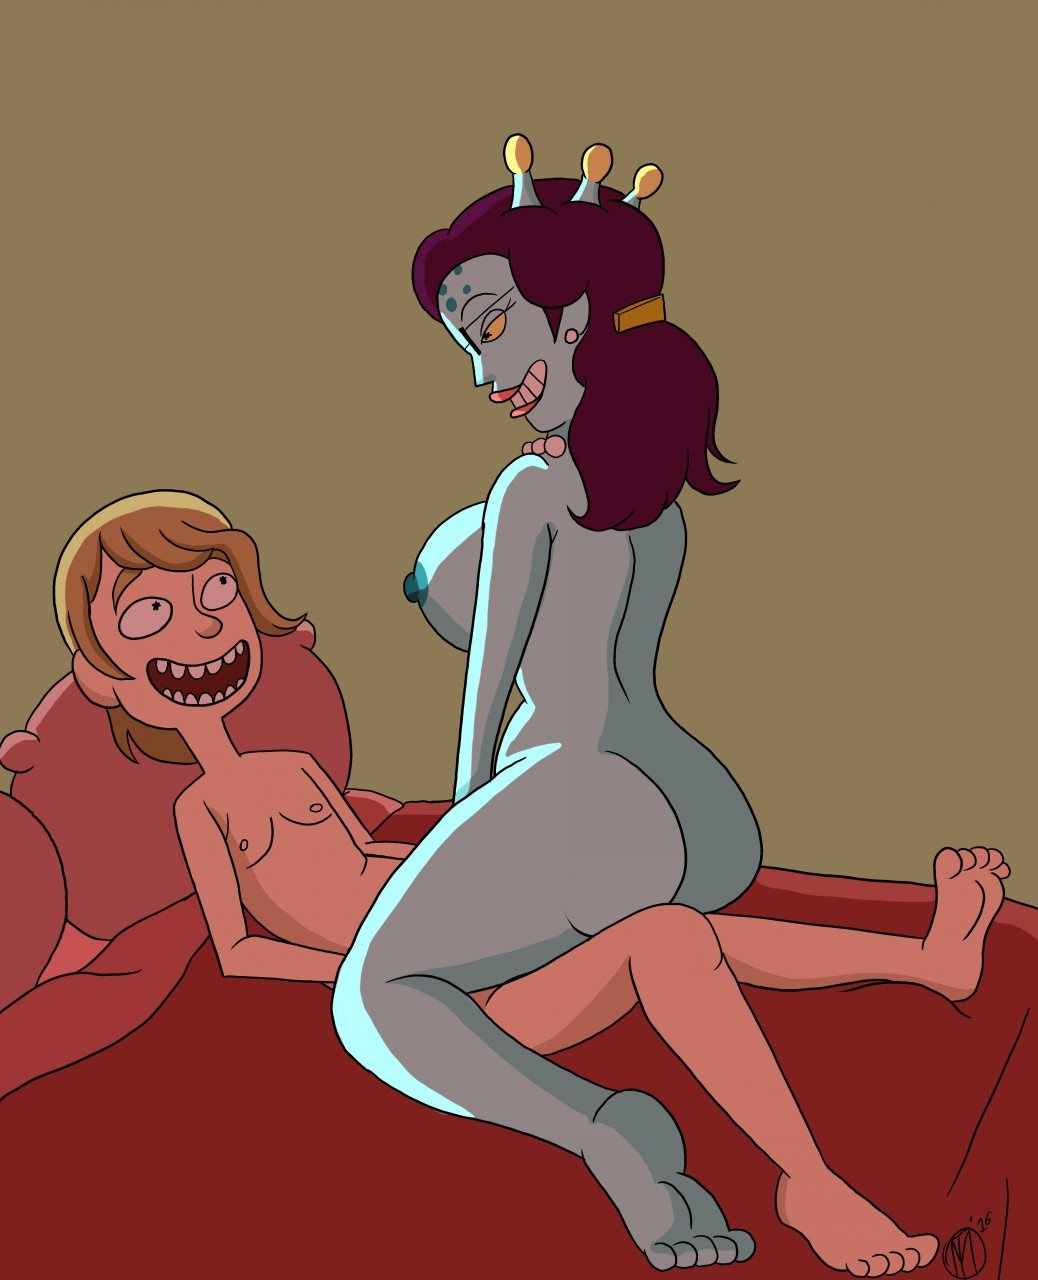 jessica morty and nude rick Who killed roger rabbit nudity